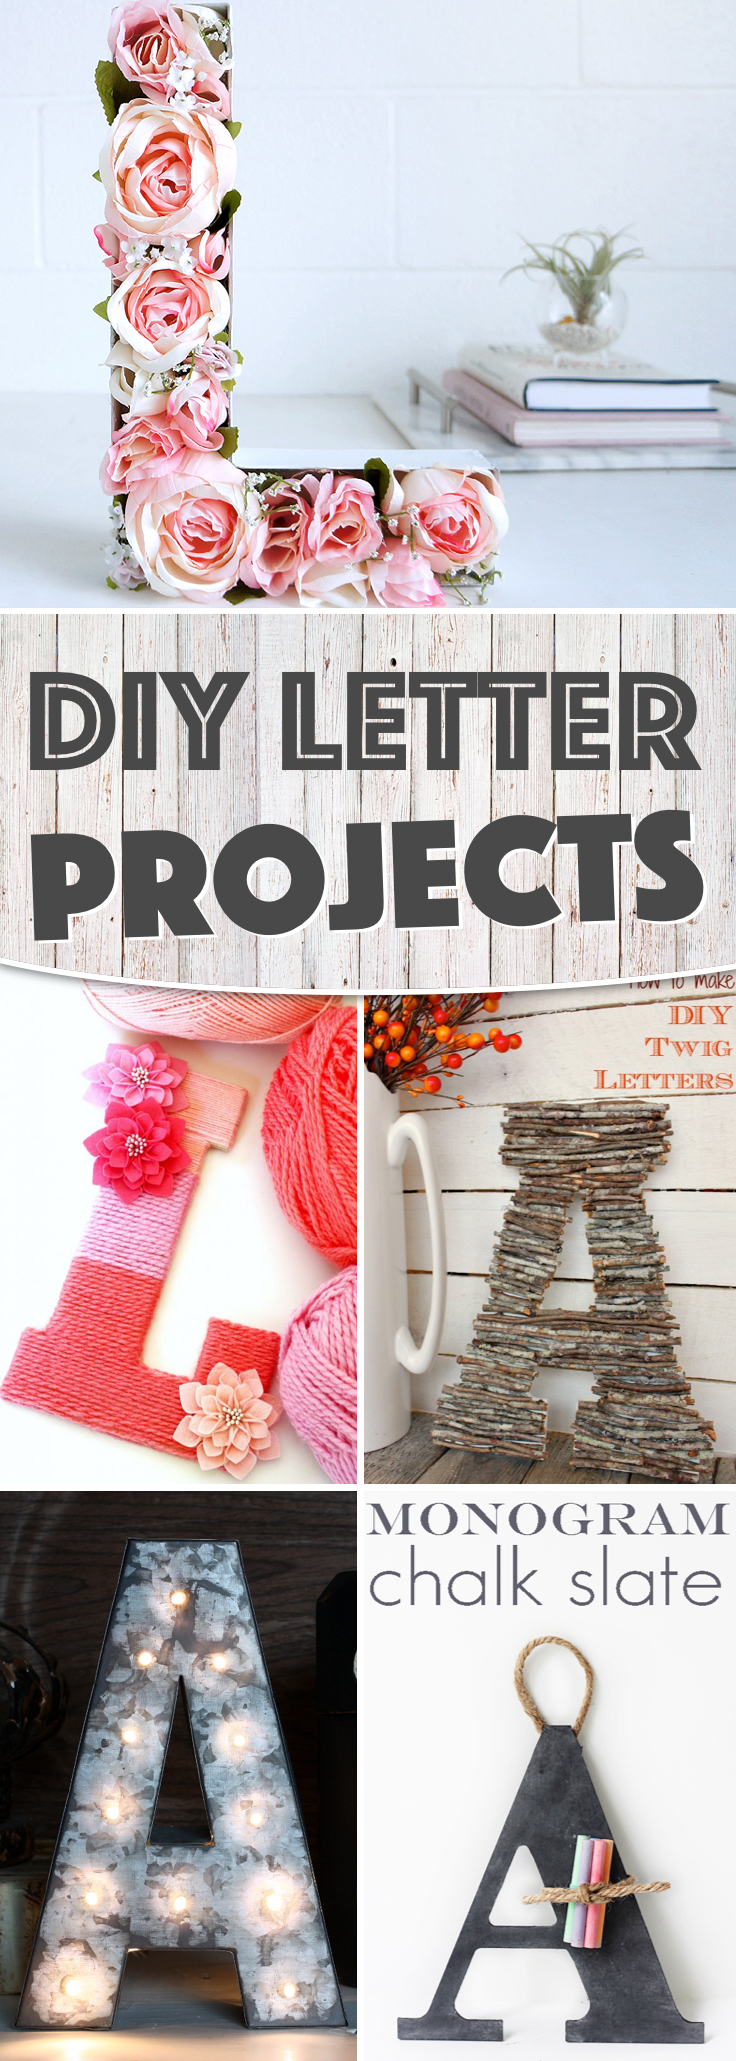 DIY Letter Projects